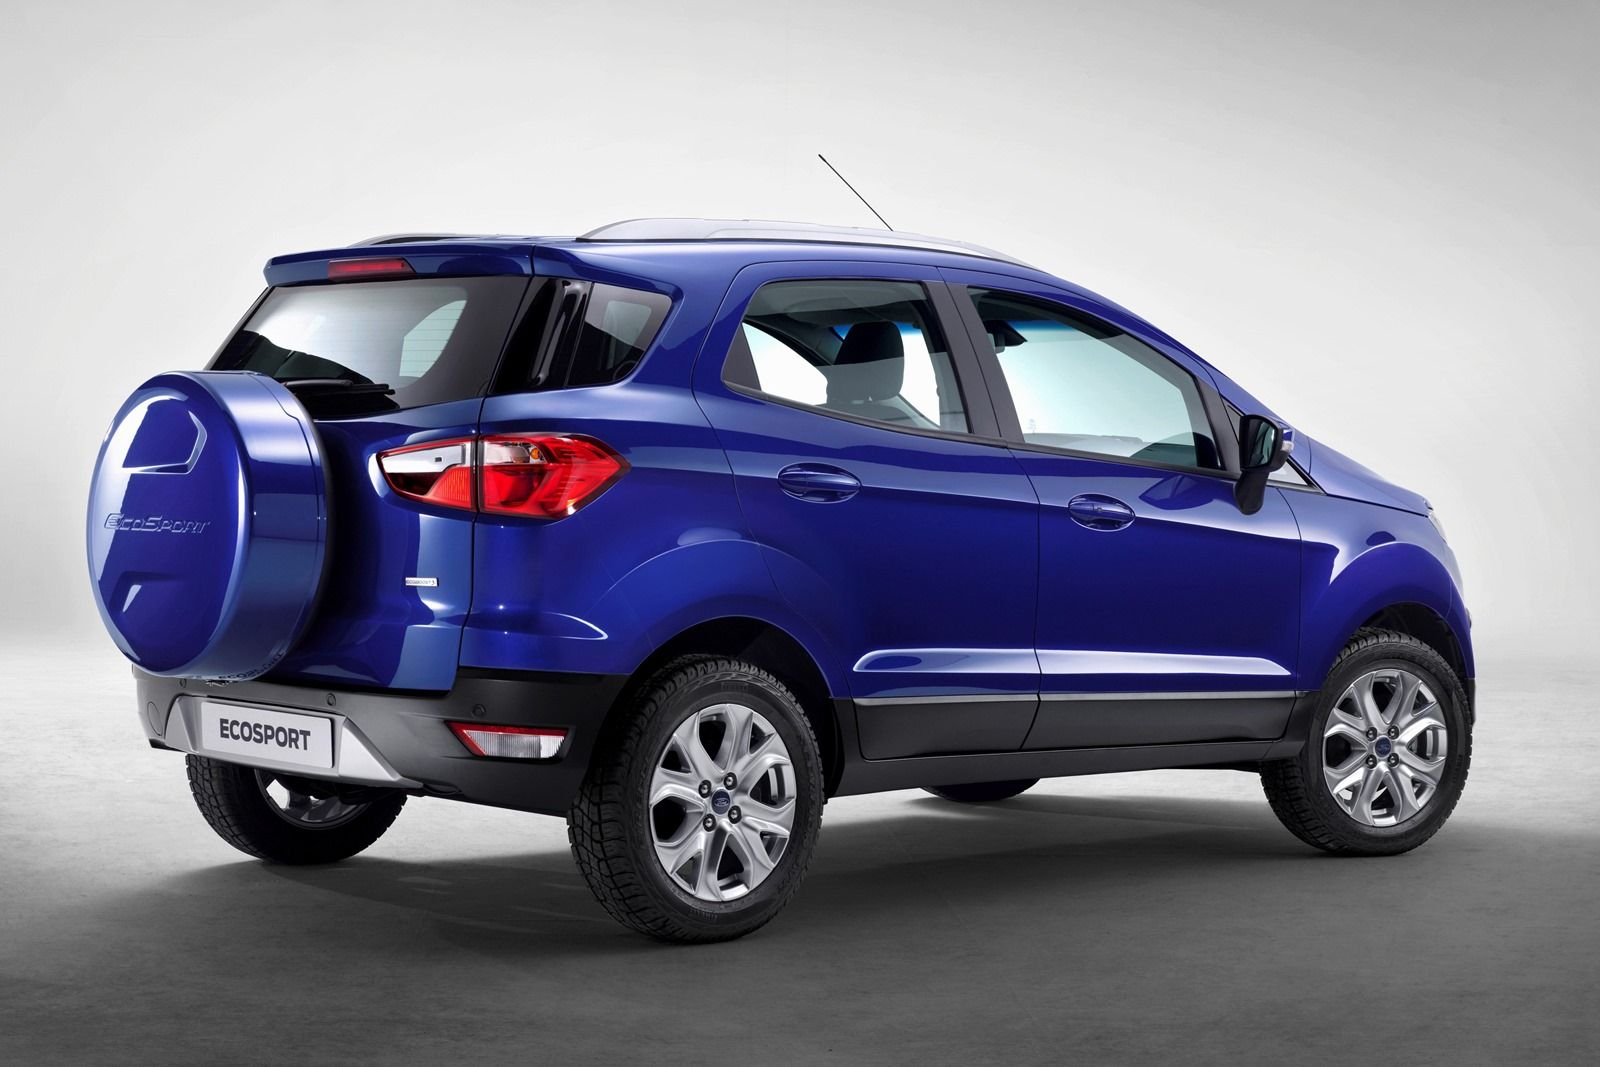 2015 Ford Ecosport Back Side Ford Ecosport Gue Auto